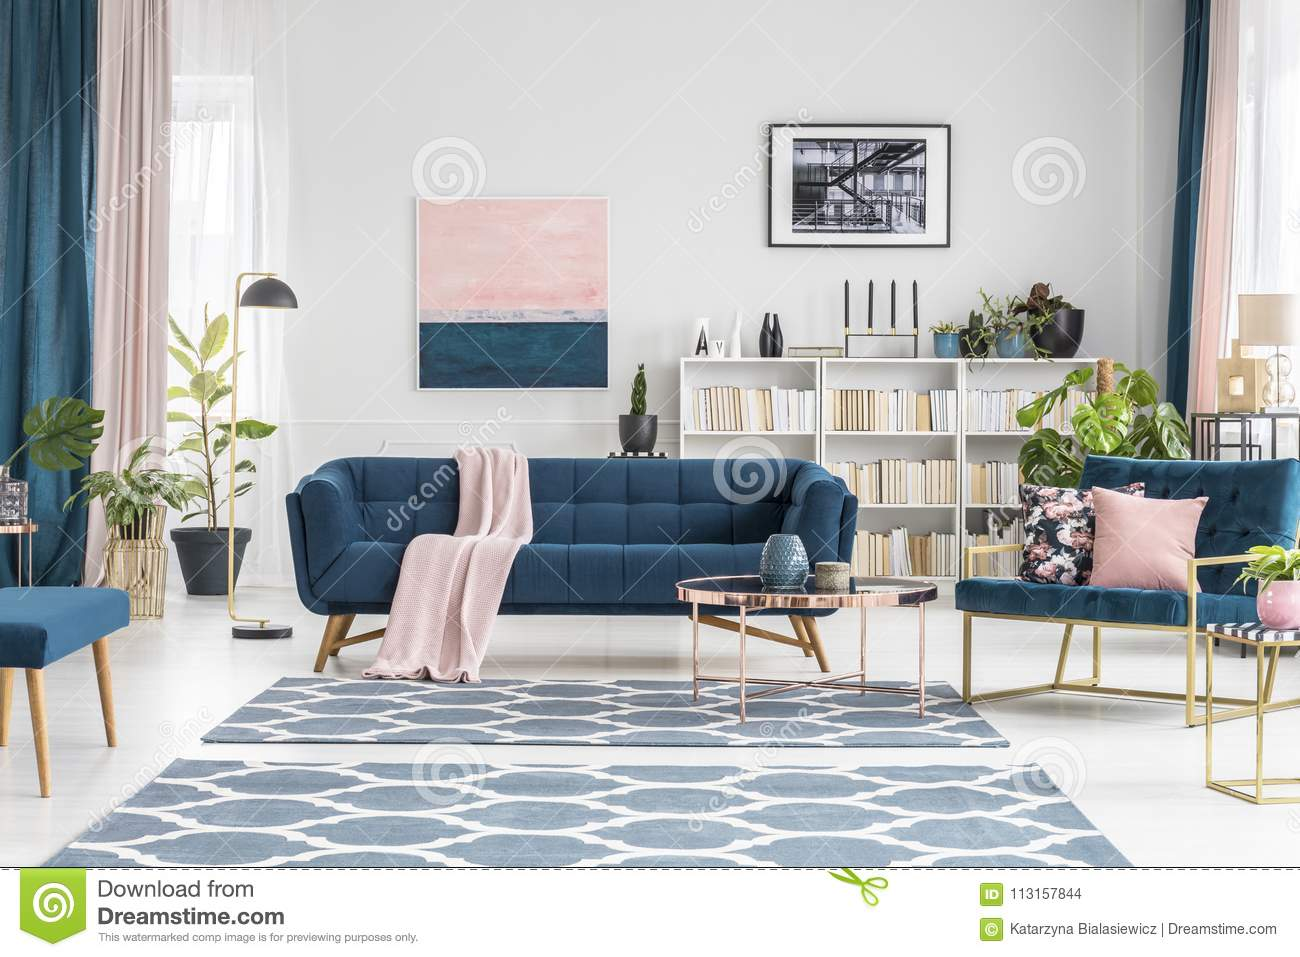 Download Pink And Blue Luxurious Interior Stock Photo   Image Of Pastel,  Bench: 113157844